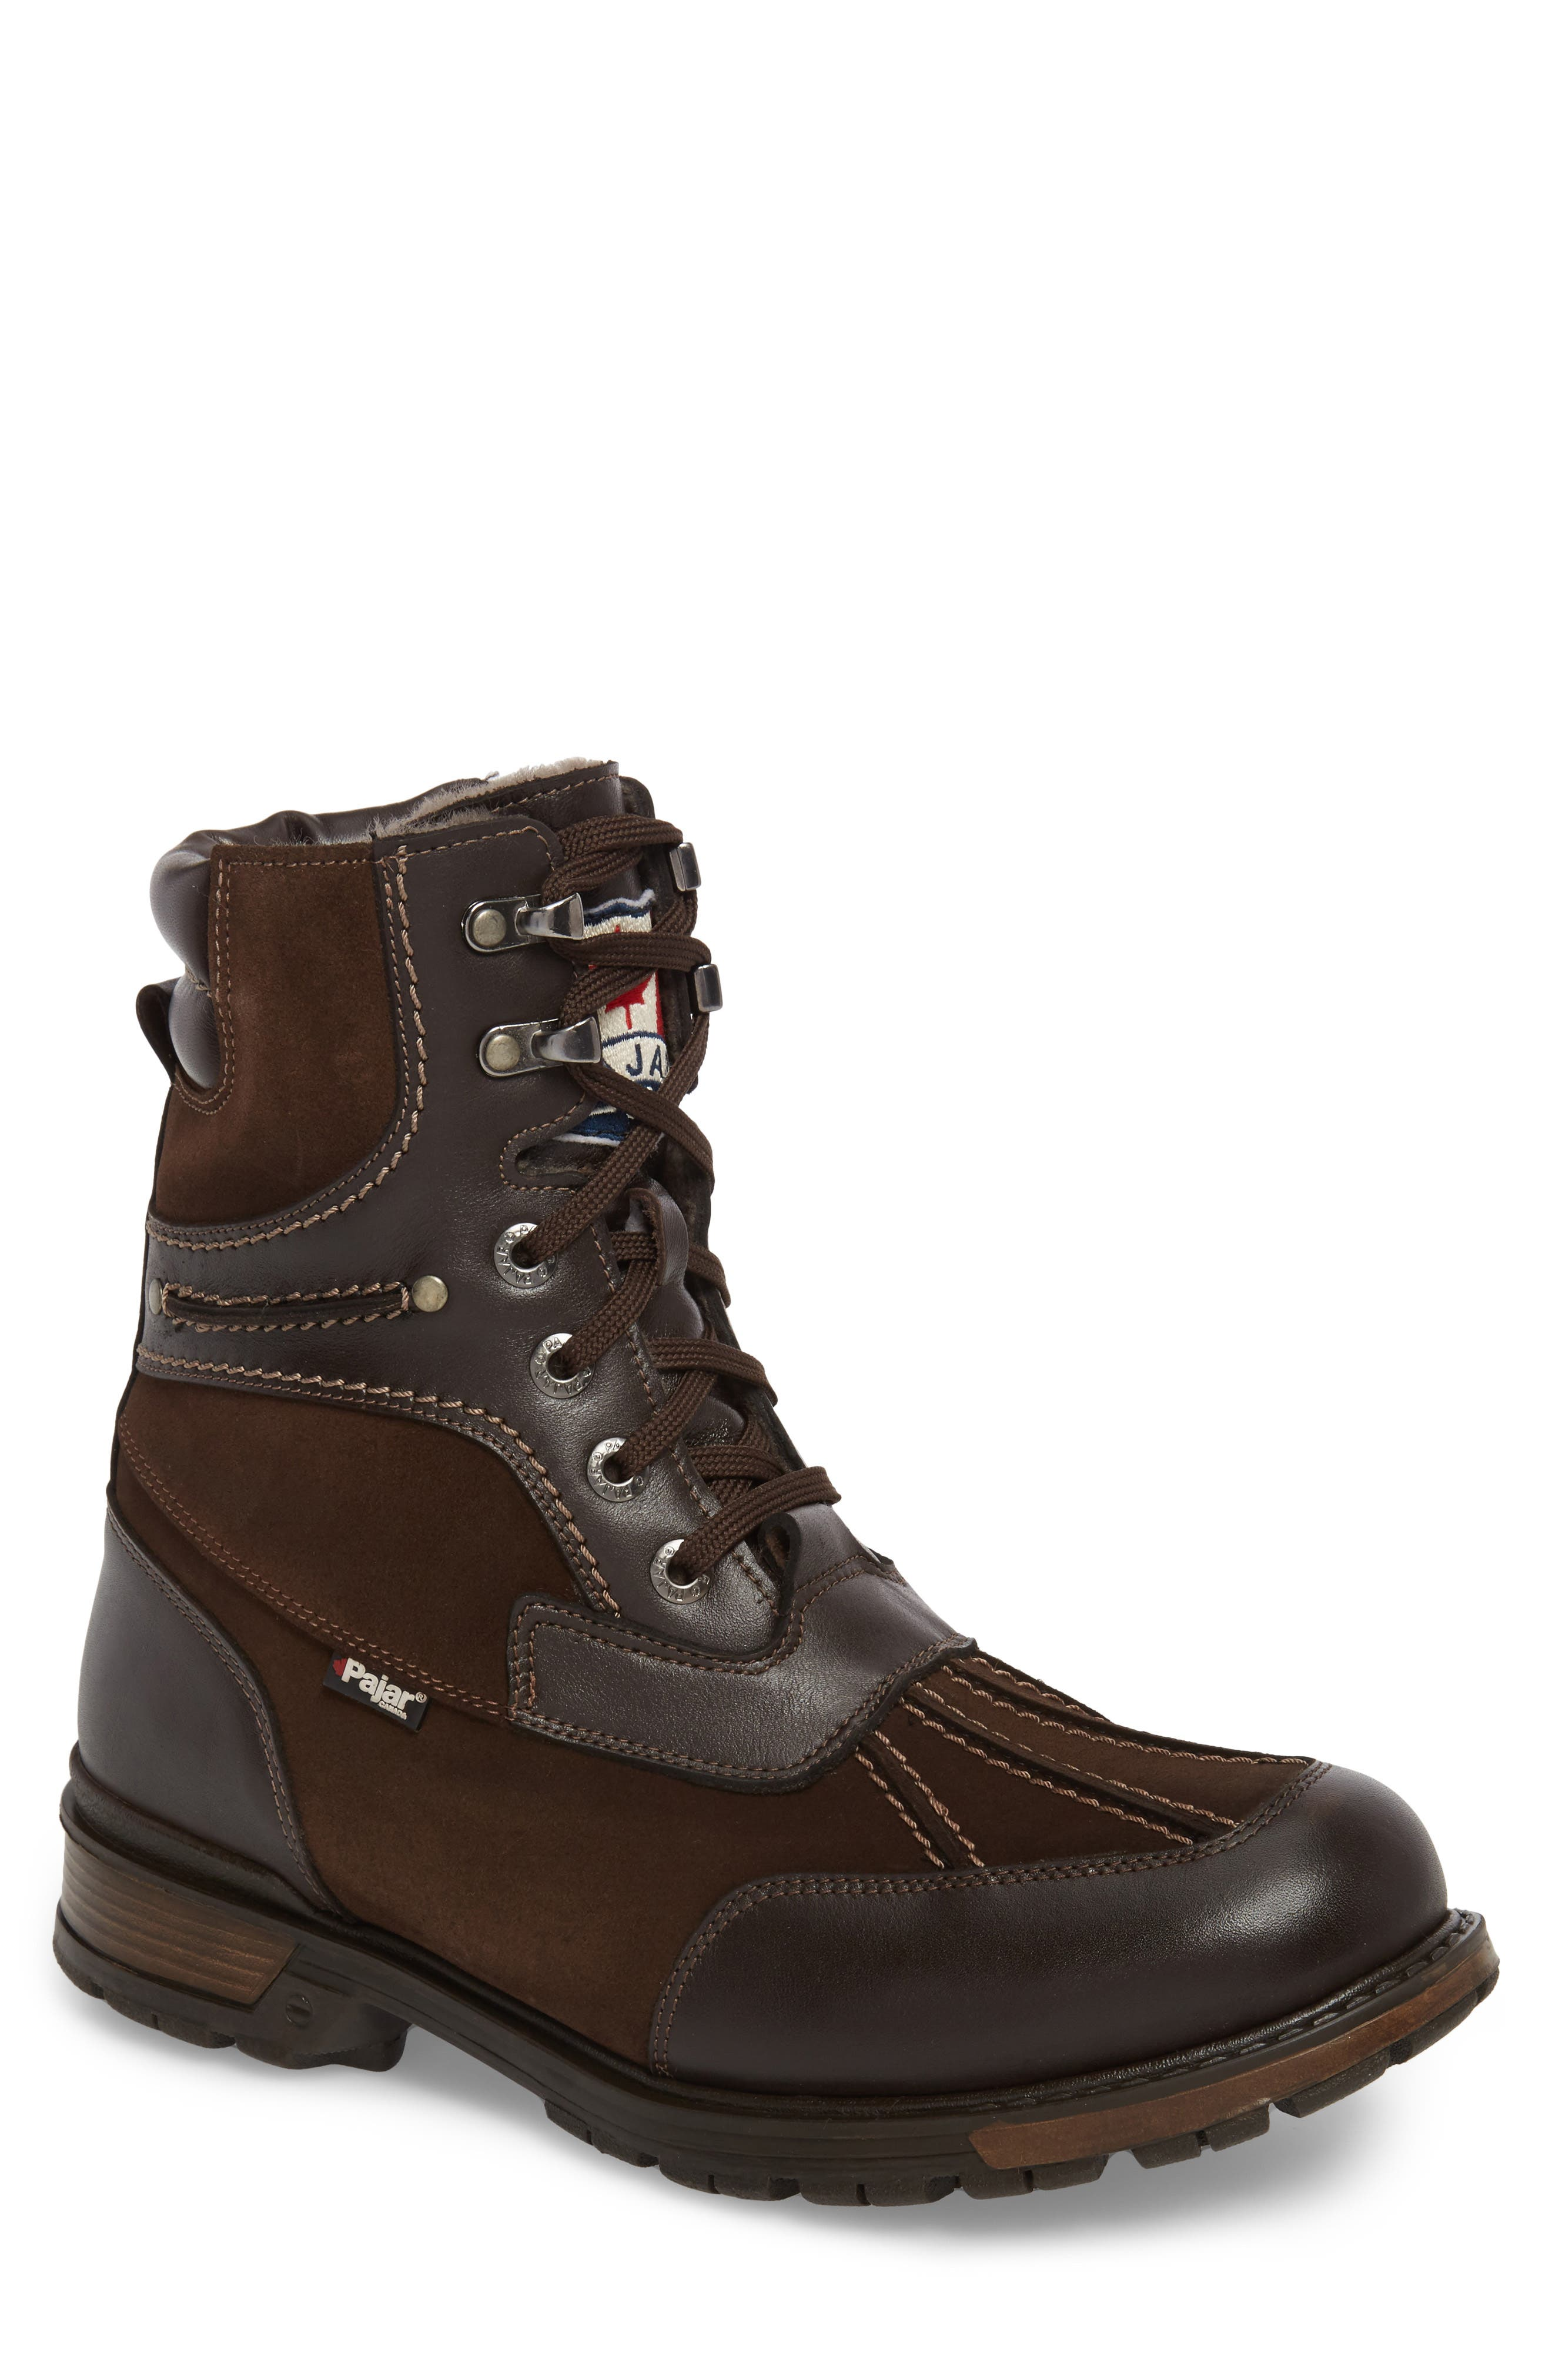 'Carrefour' Snow Boot,                         Main,                         color, DARK BROWN LEATHER